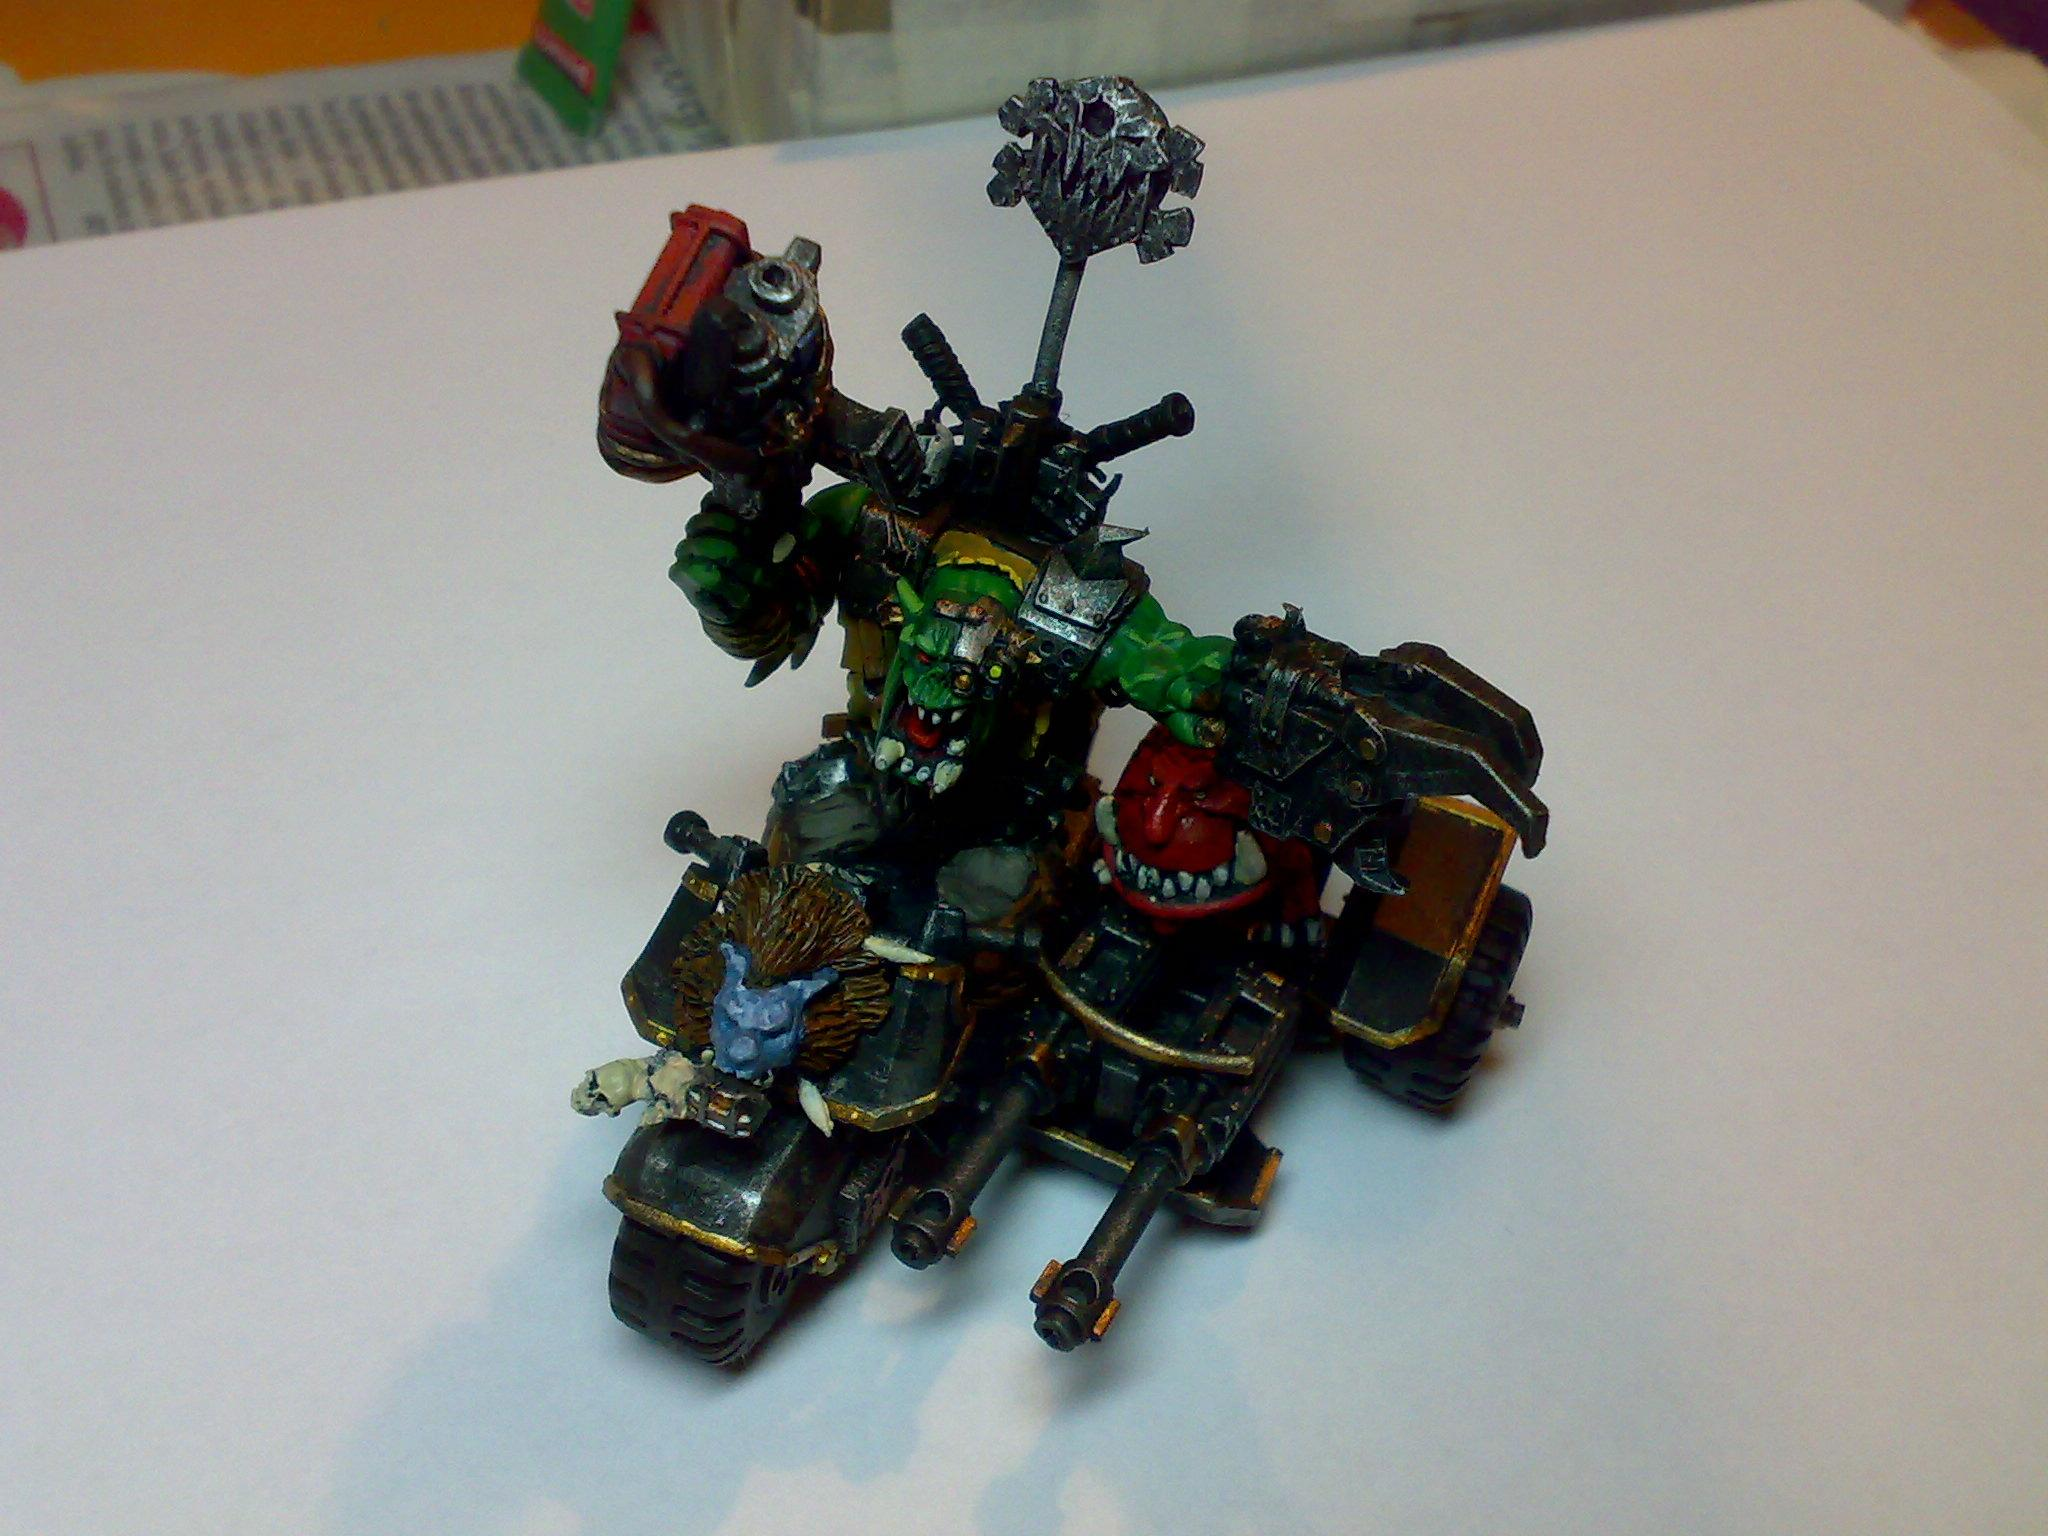 Attack Squig, Orks, Warbike, Warboss